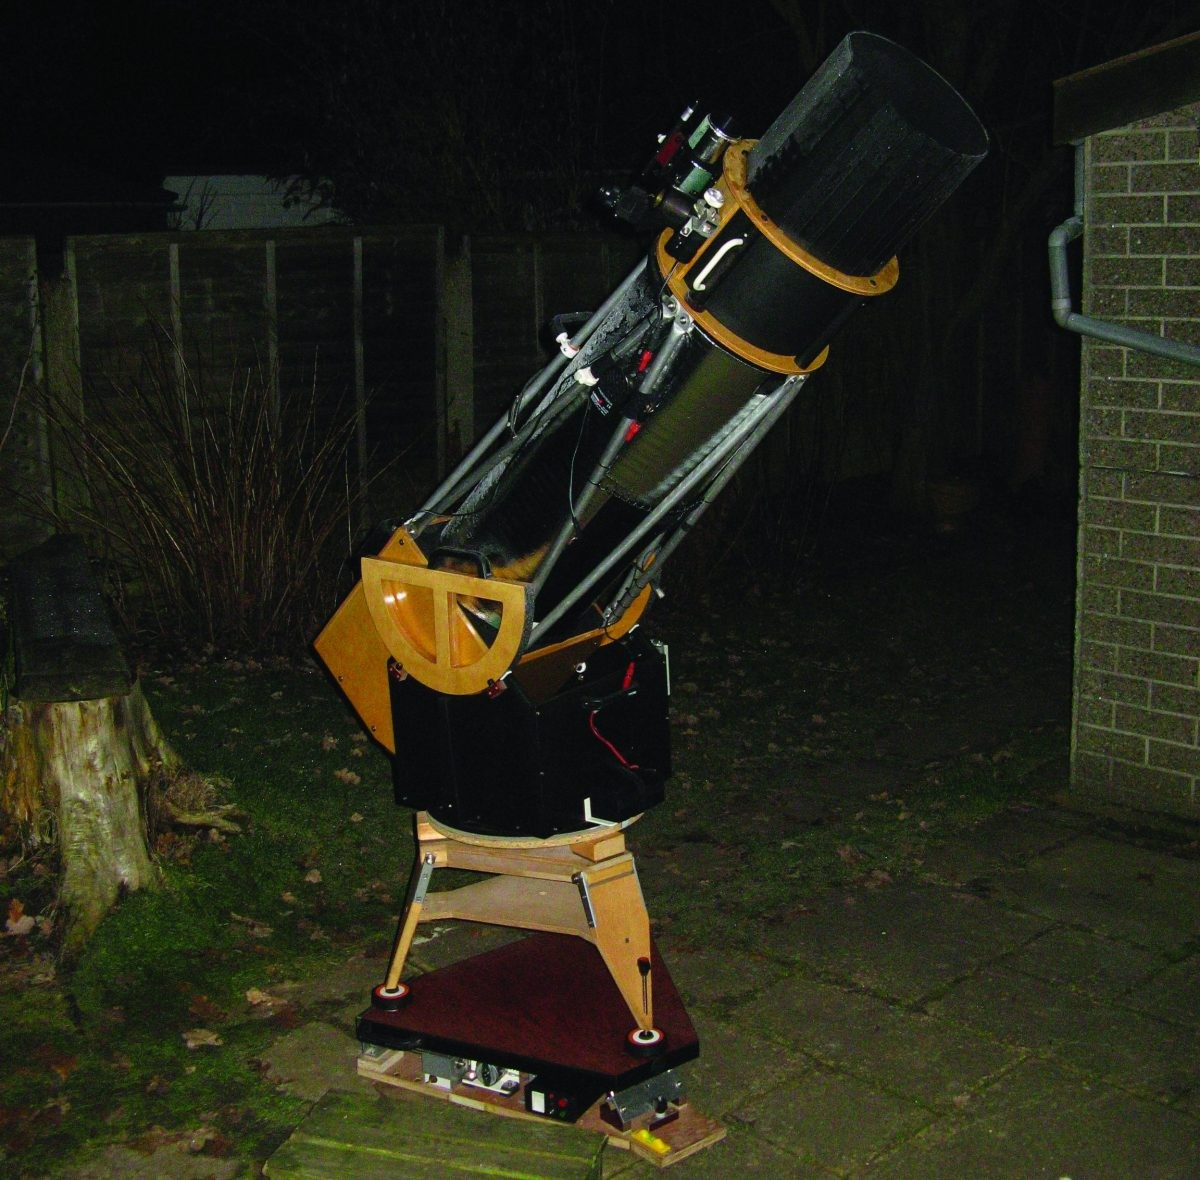 A Dobsonian mounted on an equatorial platform. Credit: Martin Lewis